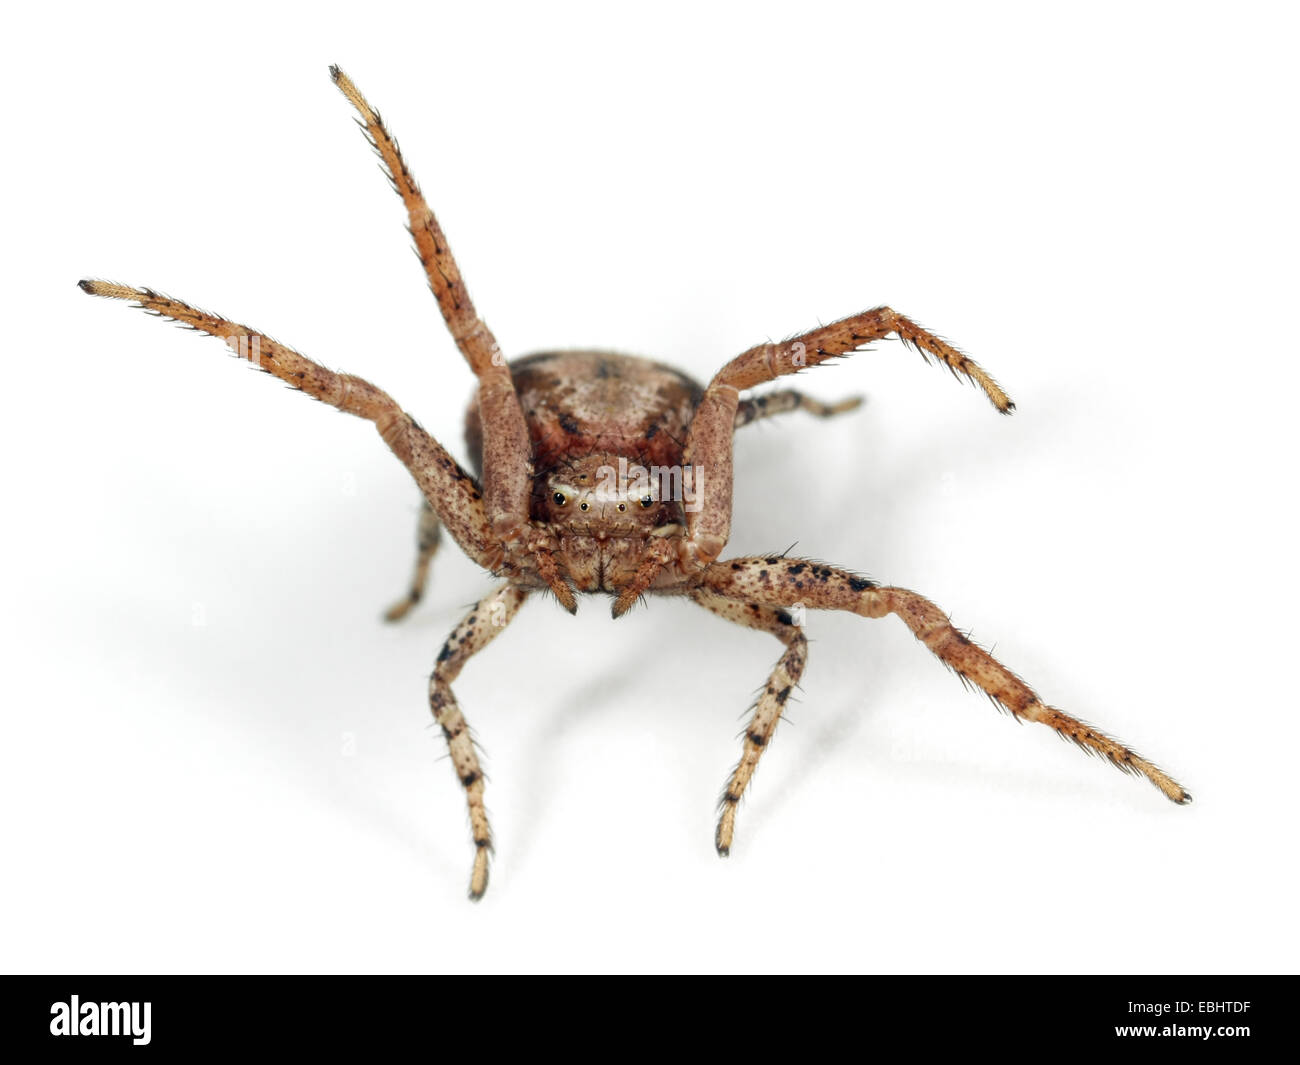 A female Crab spider (Xysticus cristatus) on white background. Family Thomisidae, Crab spiders. The spider is waving - Stock Image